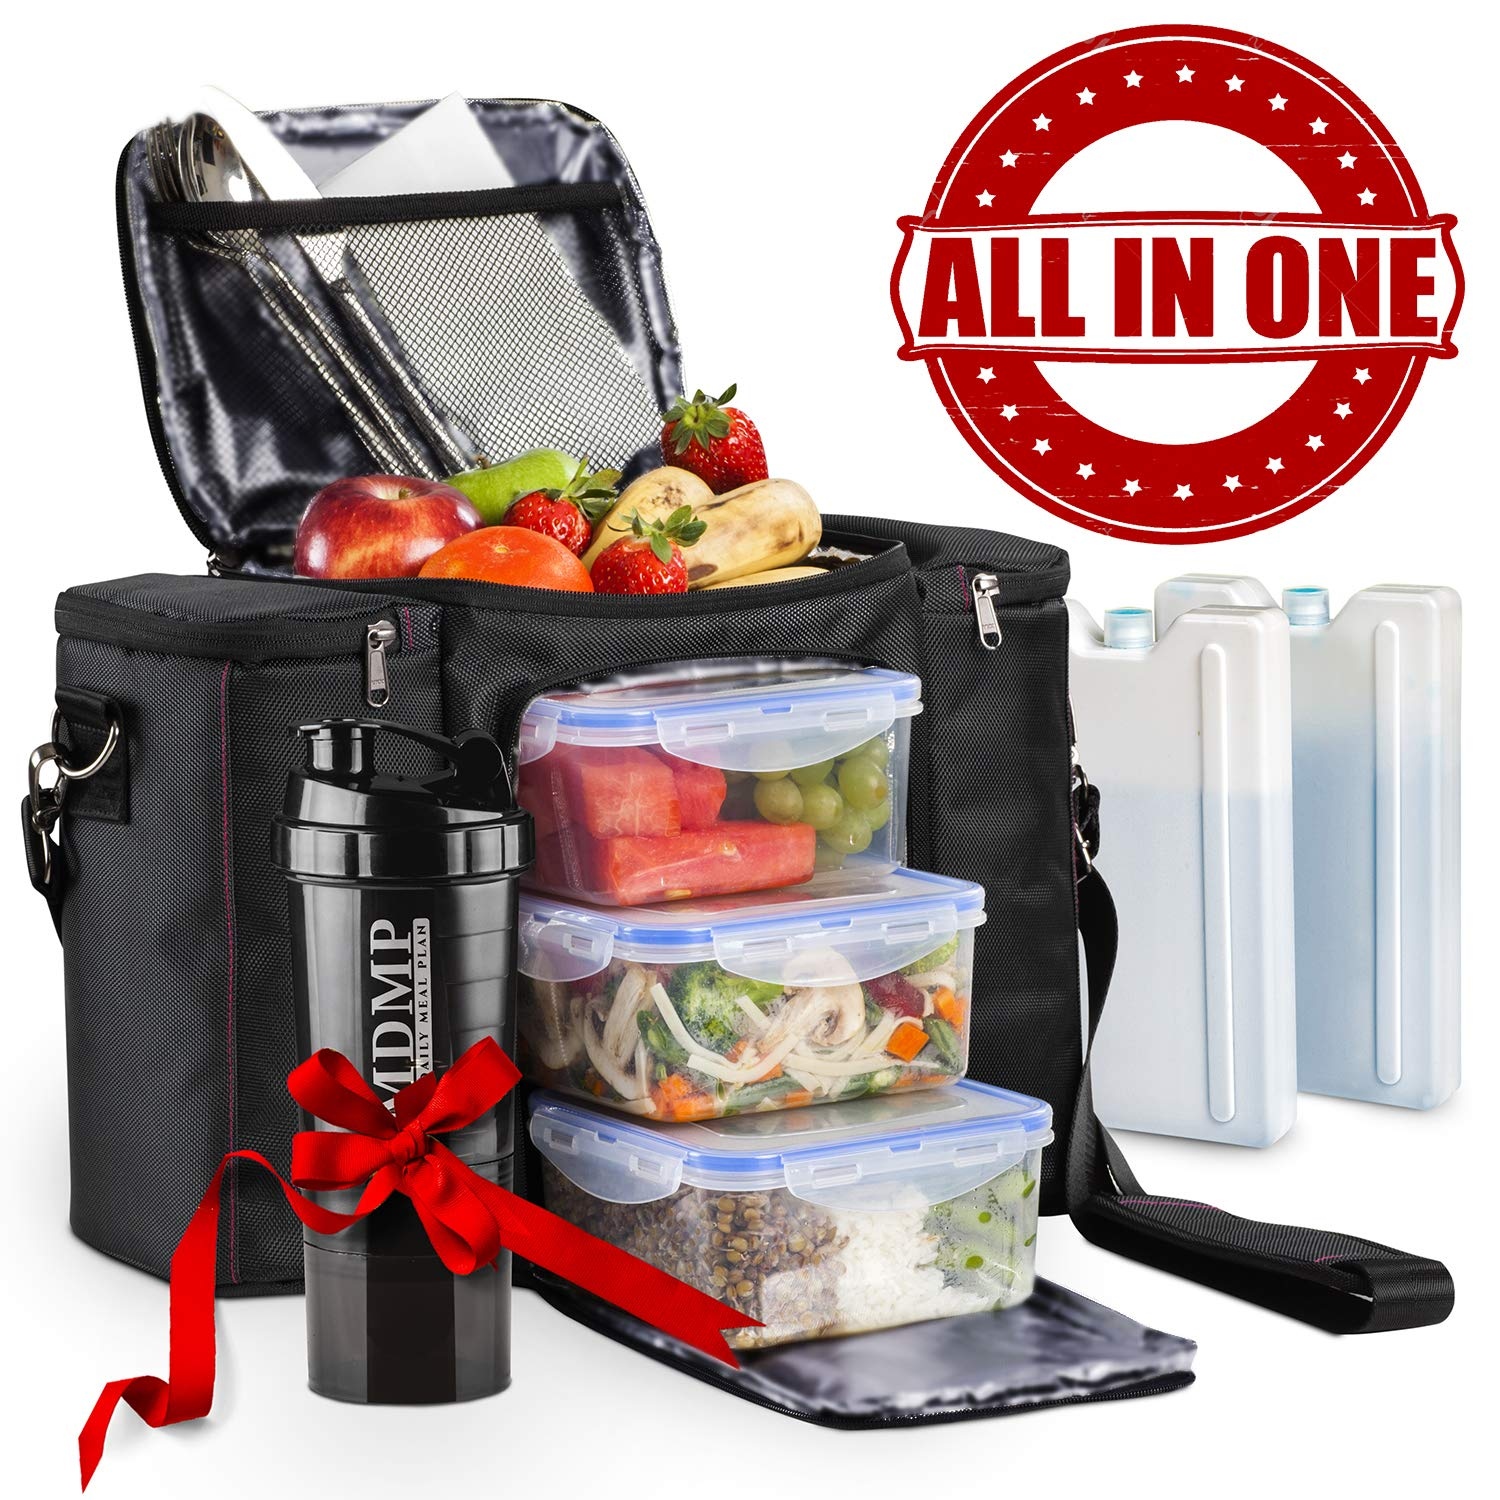 Meal Prep Lunch Bag/Box For Men, Women + 3 Large Food Containers (45 Oz.) + 2 Big Reusable Ice Packs + Shoulder Strap + Shaker With Storage. Insulated Lunchbox Cooler Portion Control Set (Black) by MDMP - My Daily Meal Plan